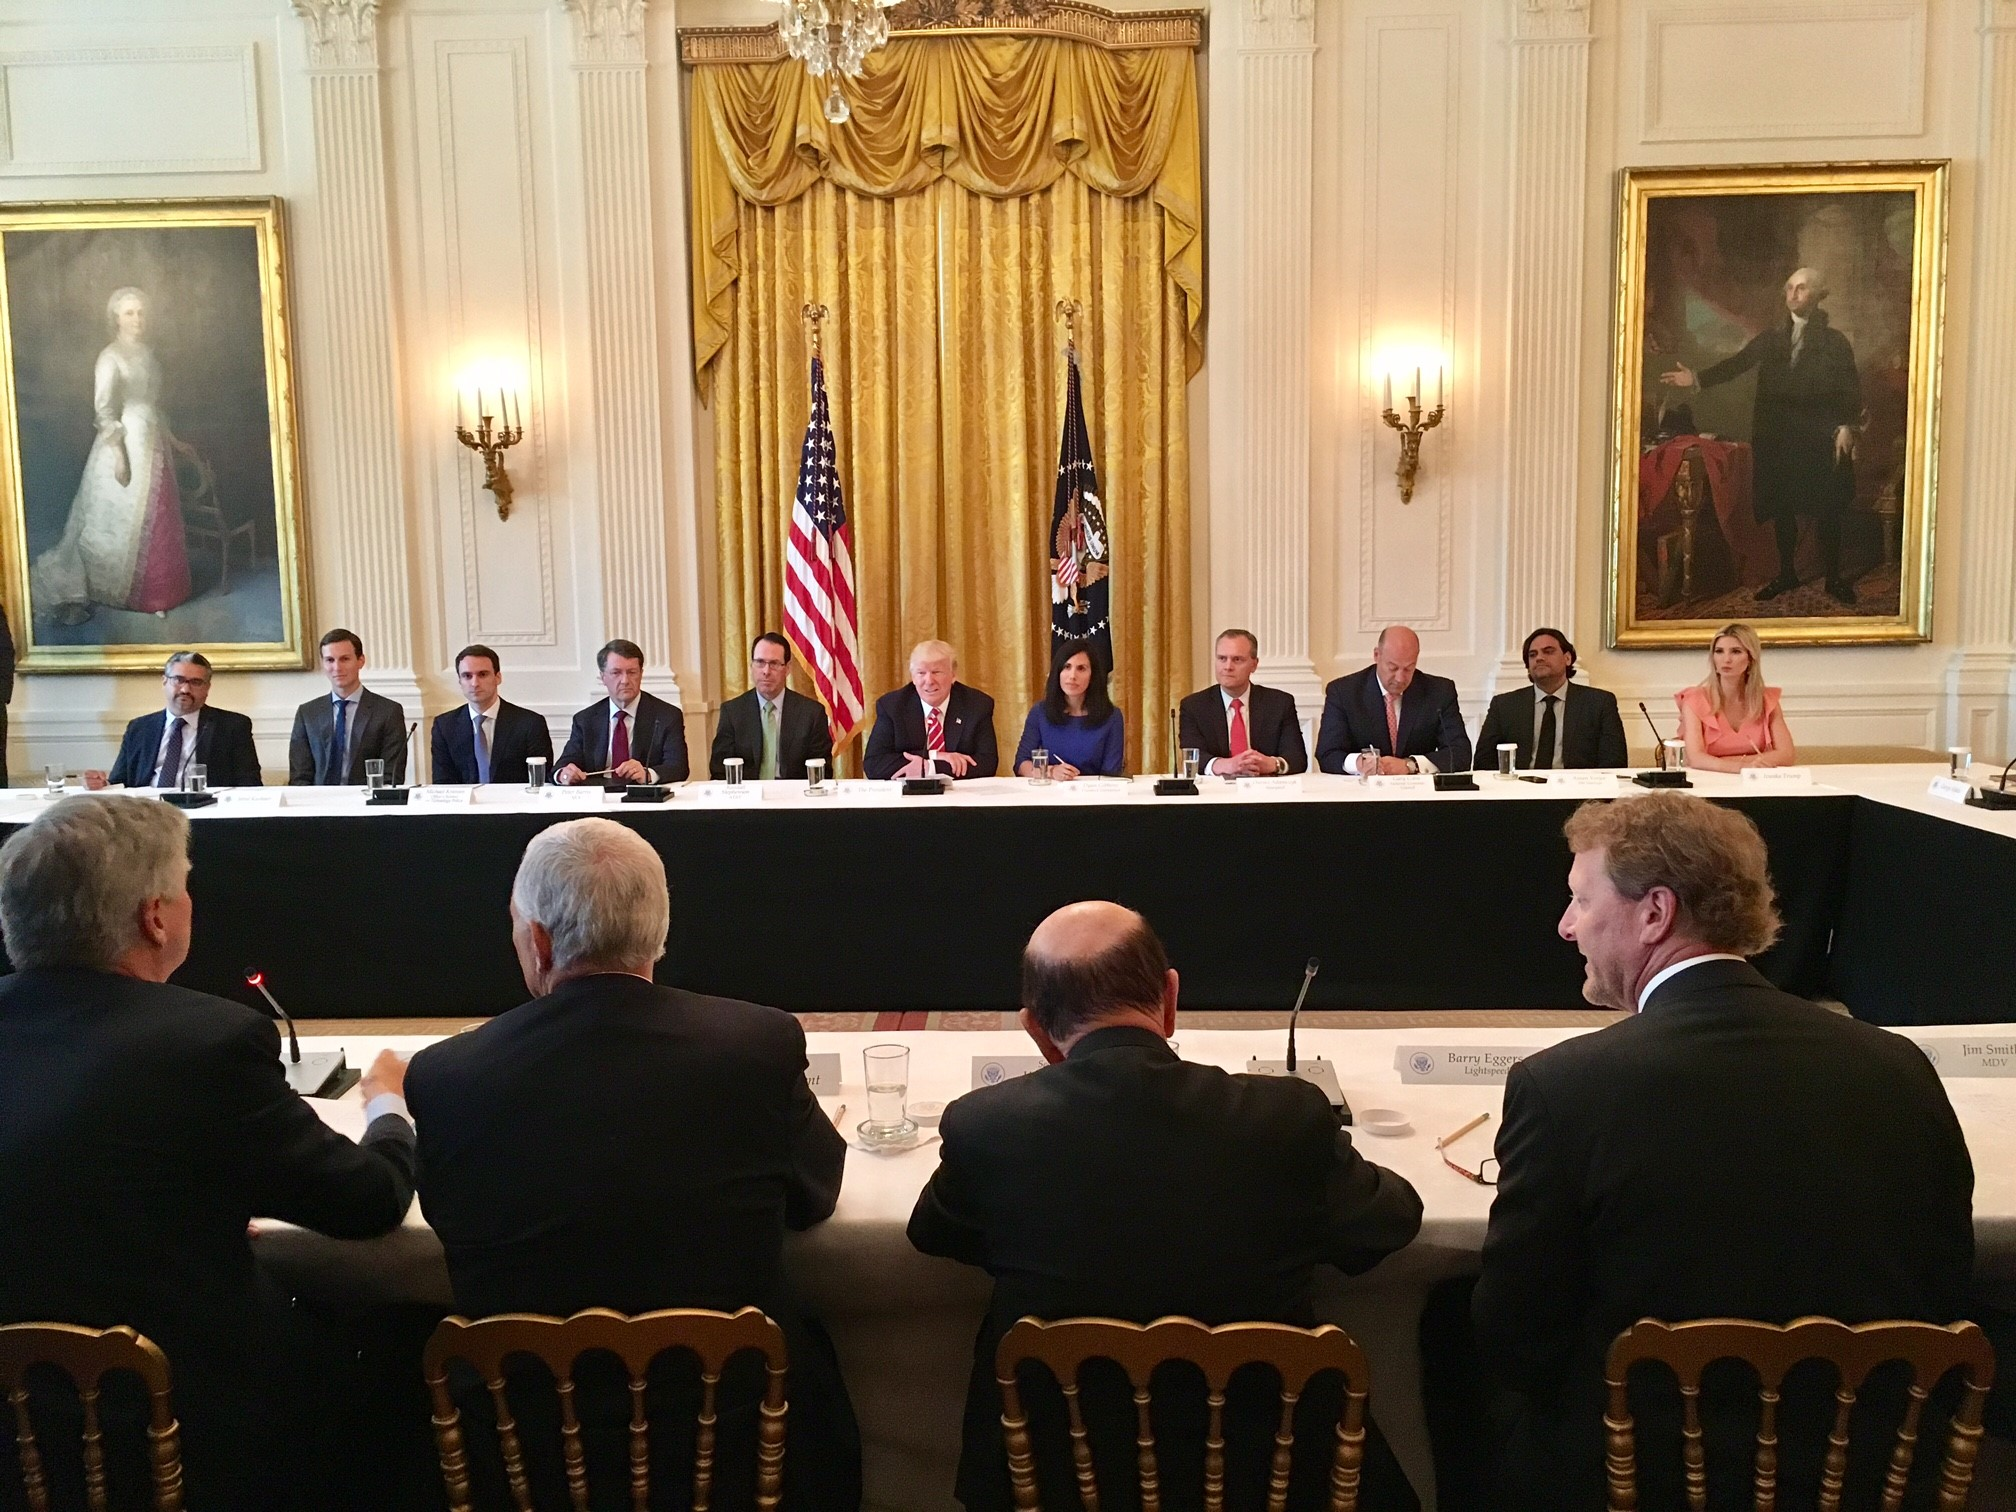 White House American Leadership in Emerging Technology  roundtable with GE, AT&T, Verizon, and others